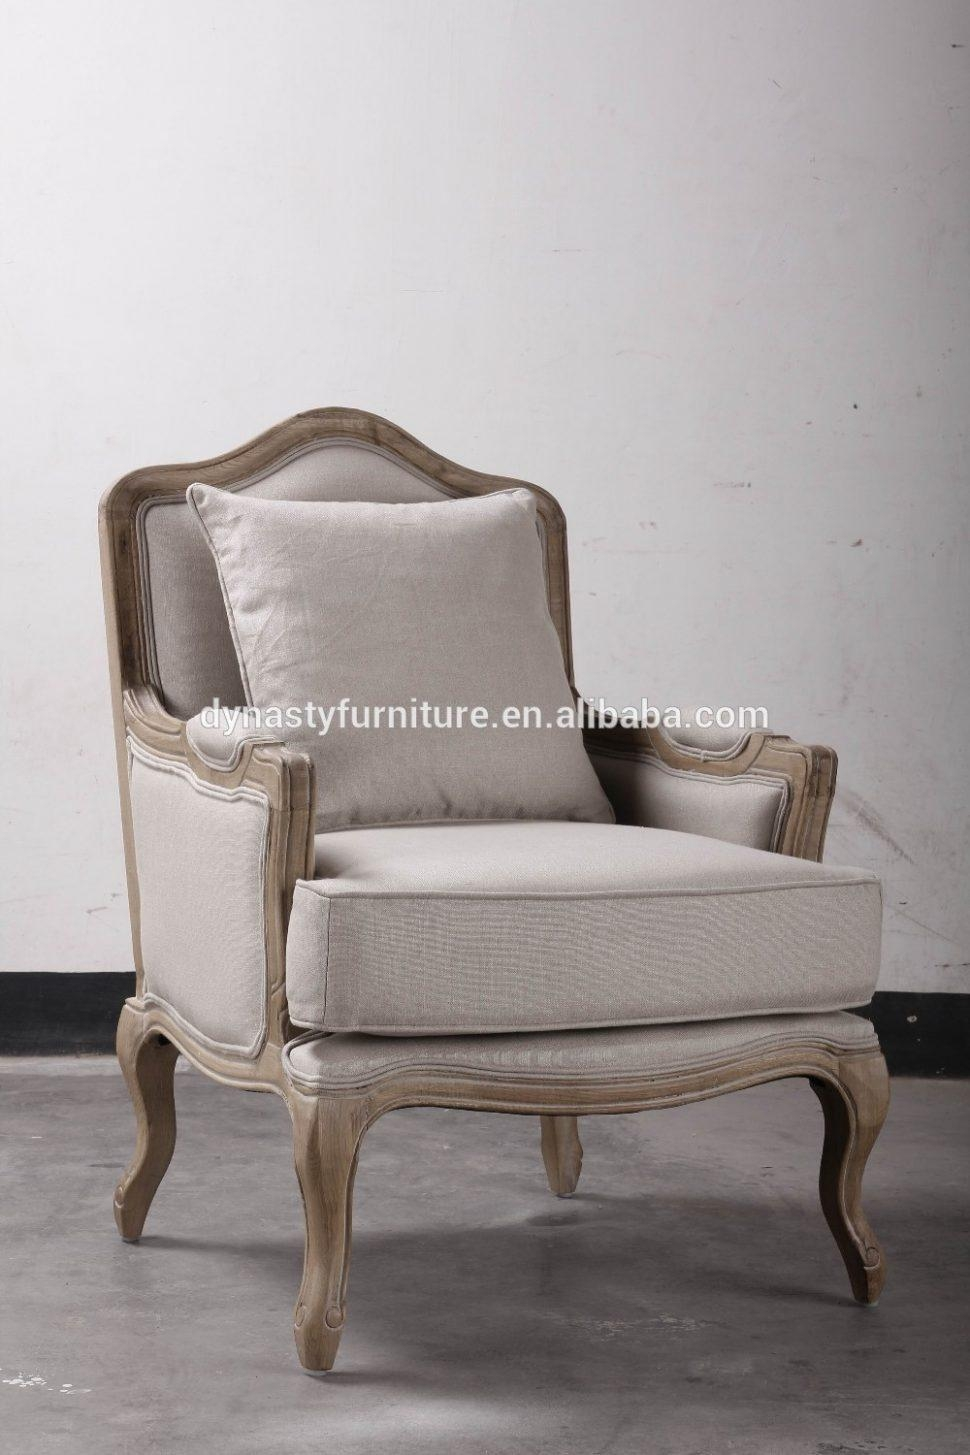 Sofas Center : Fancy Sofa Sets Set Wood Furniture Singular Photo Pertaining To Fancy Sofas (Image 18 of 20)